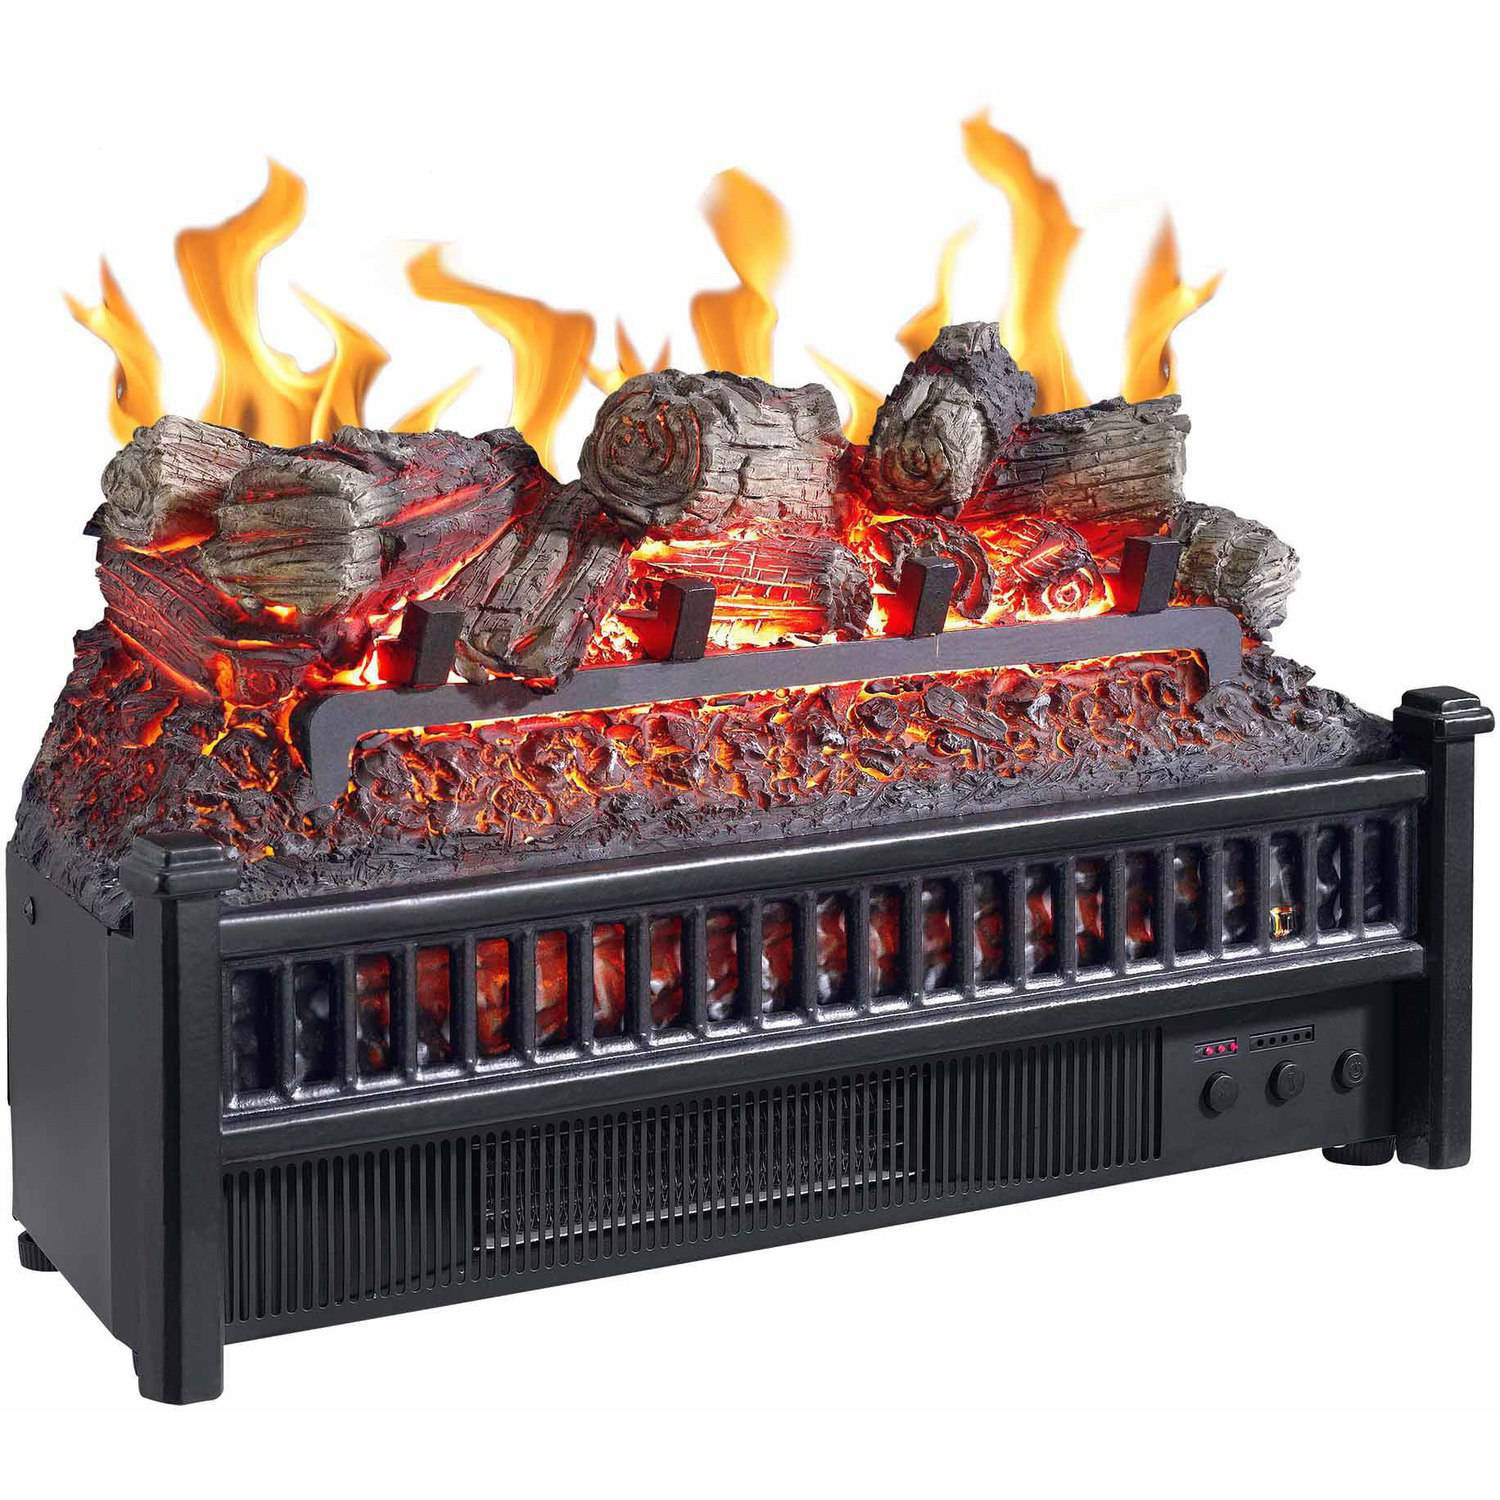 Free Shipping. Buy Electric Log with Heater at Walmart.com